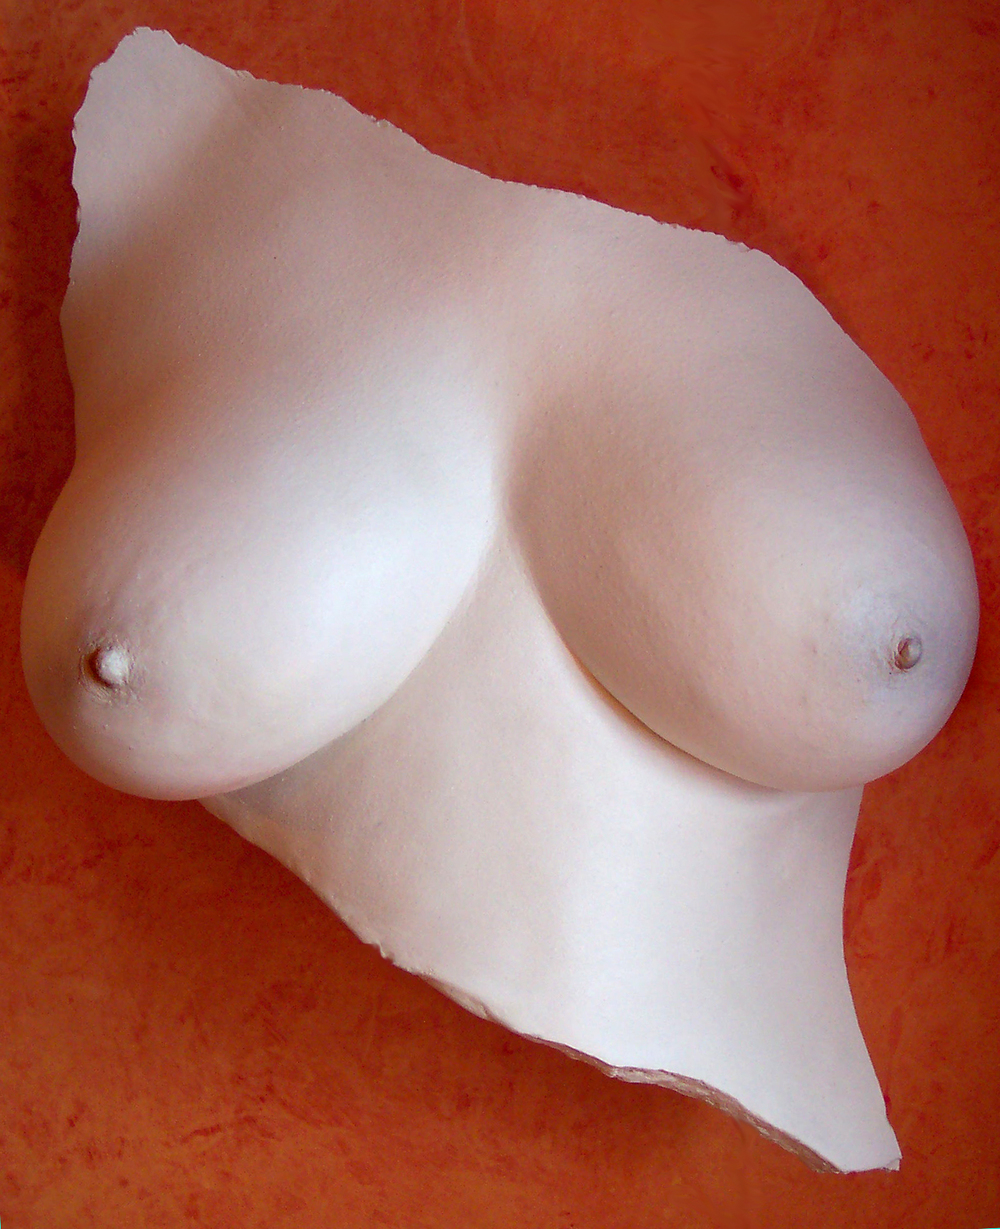 plain breasts 2 copy.jpg